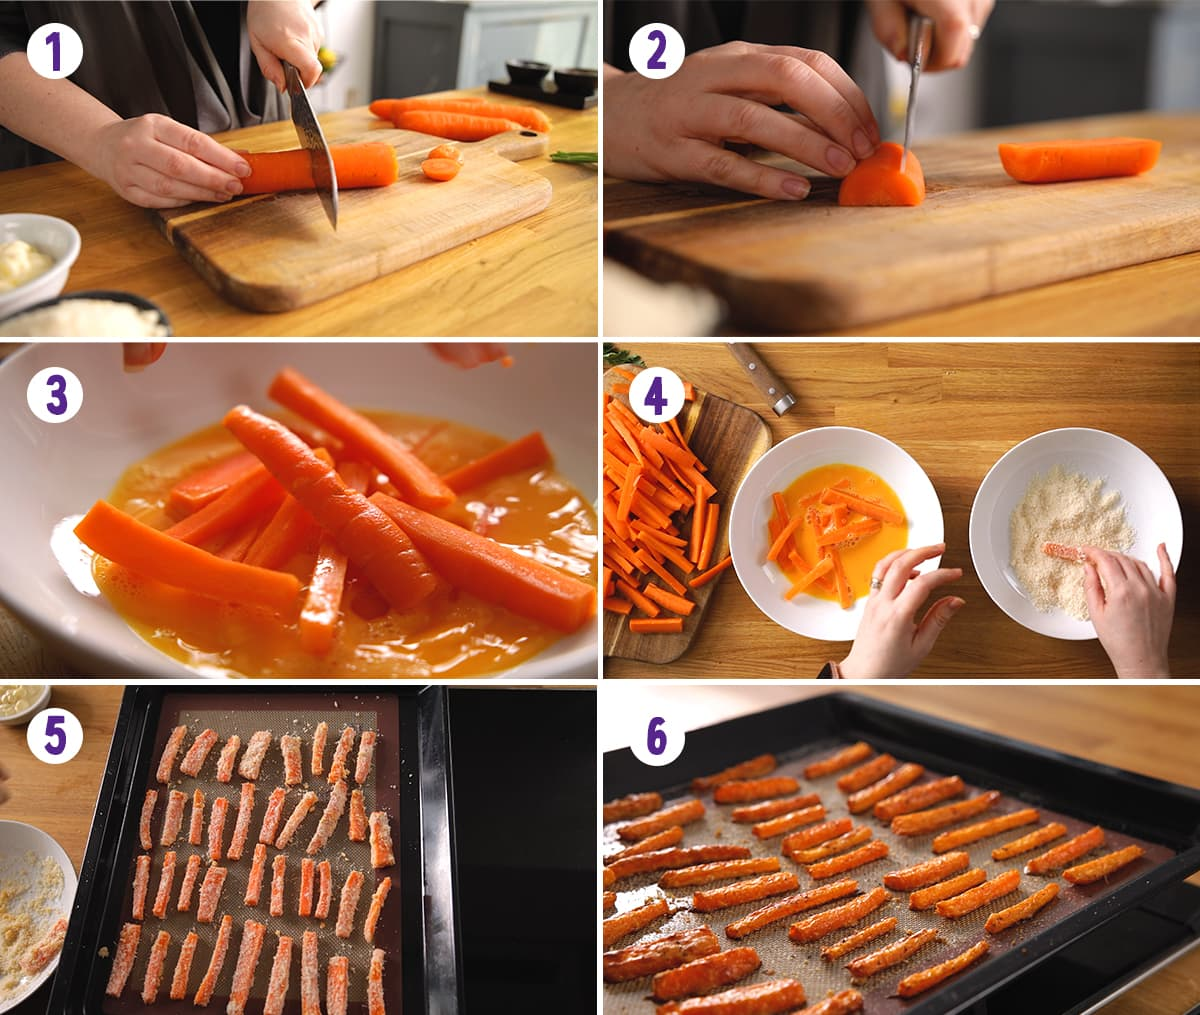 6 image collage showing how to make carrot fries